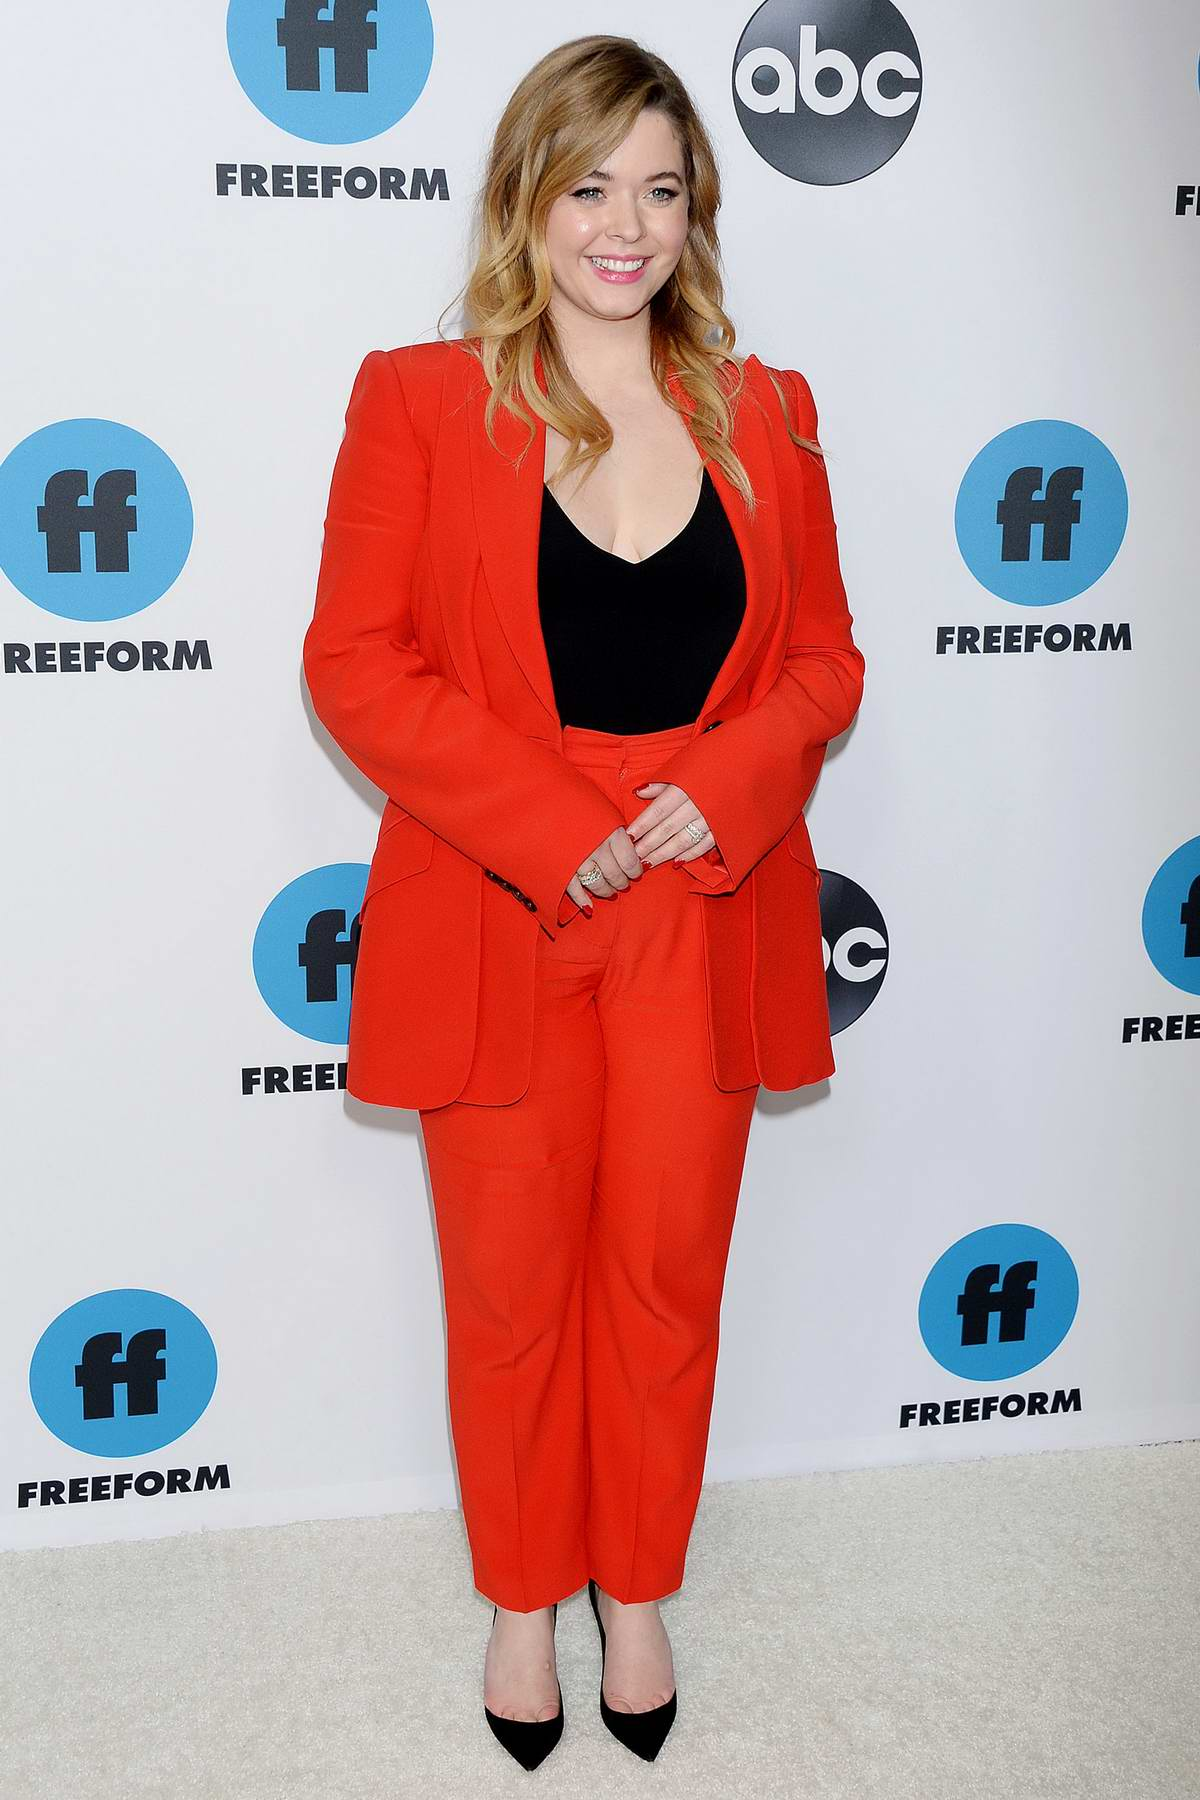 Sasha Pieterse attends the Freeform's TCA Winter Press Tour in Los Angeles